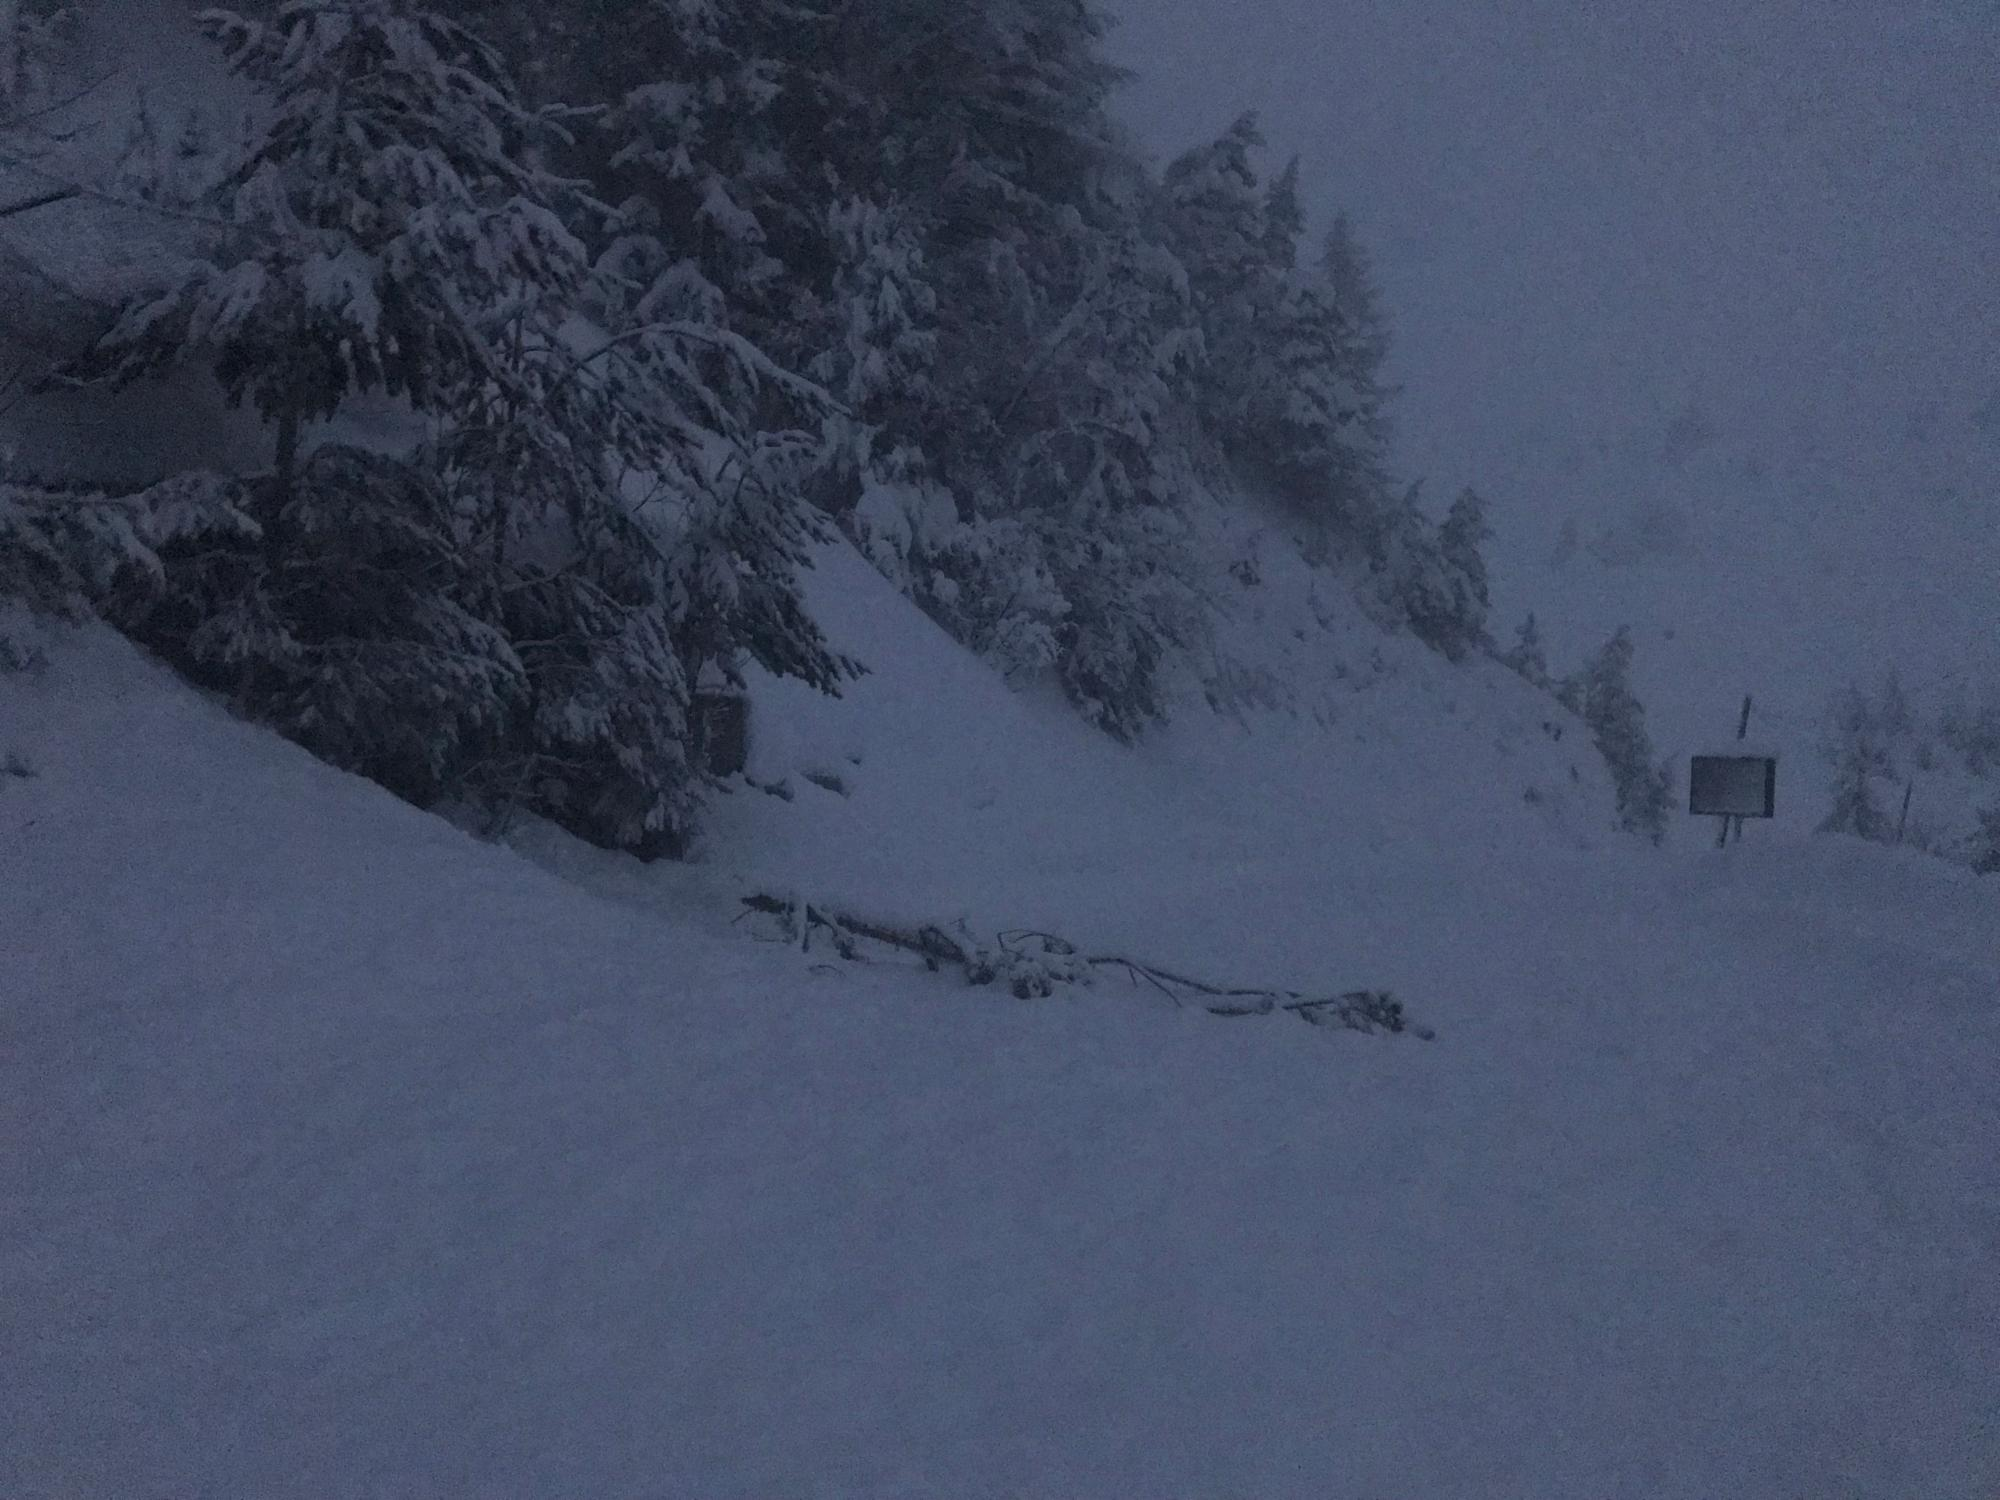 Avalanche ARVAN - villard - Photo 1